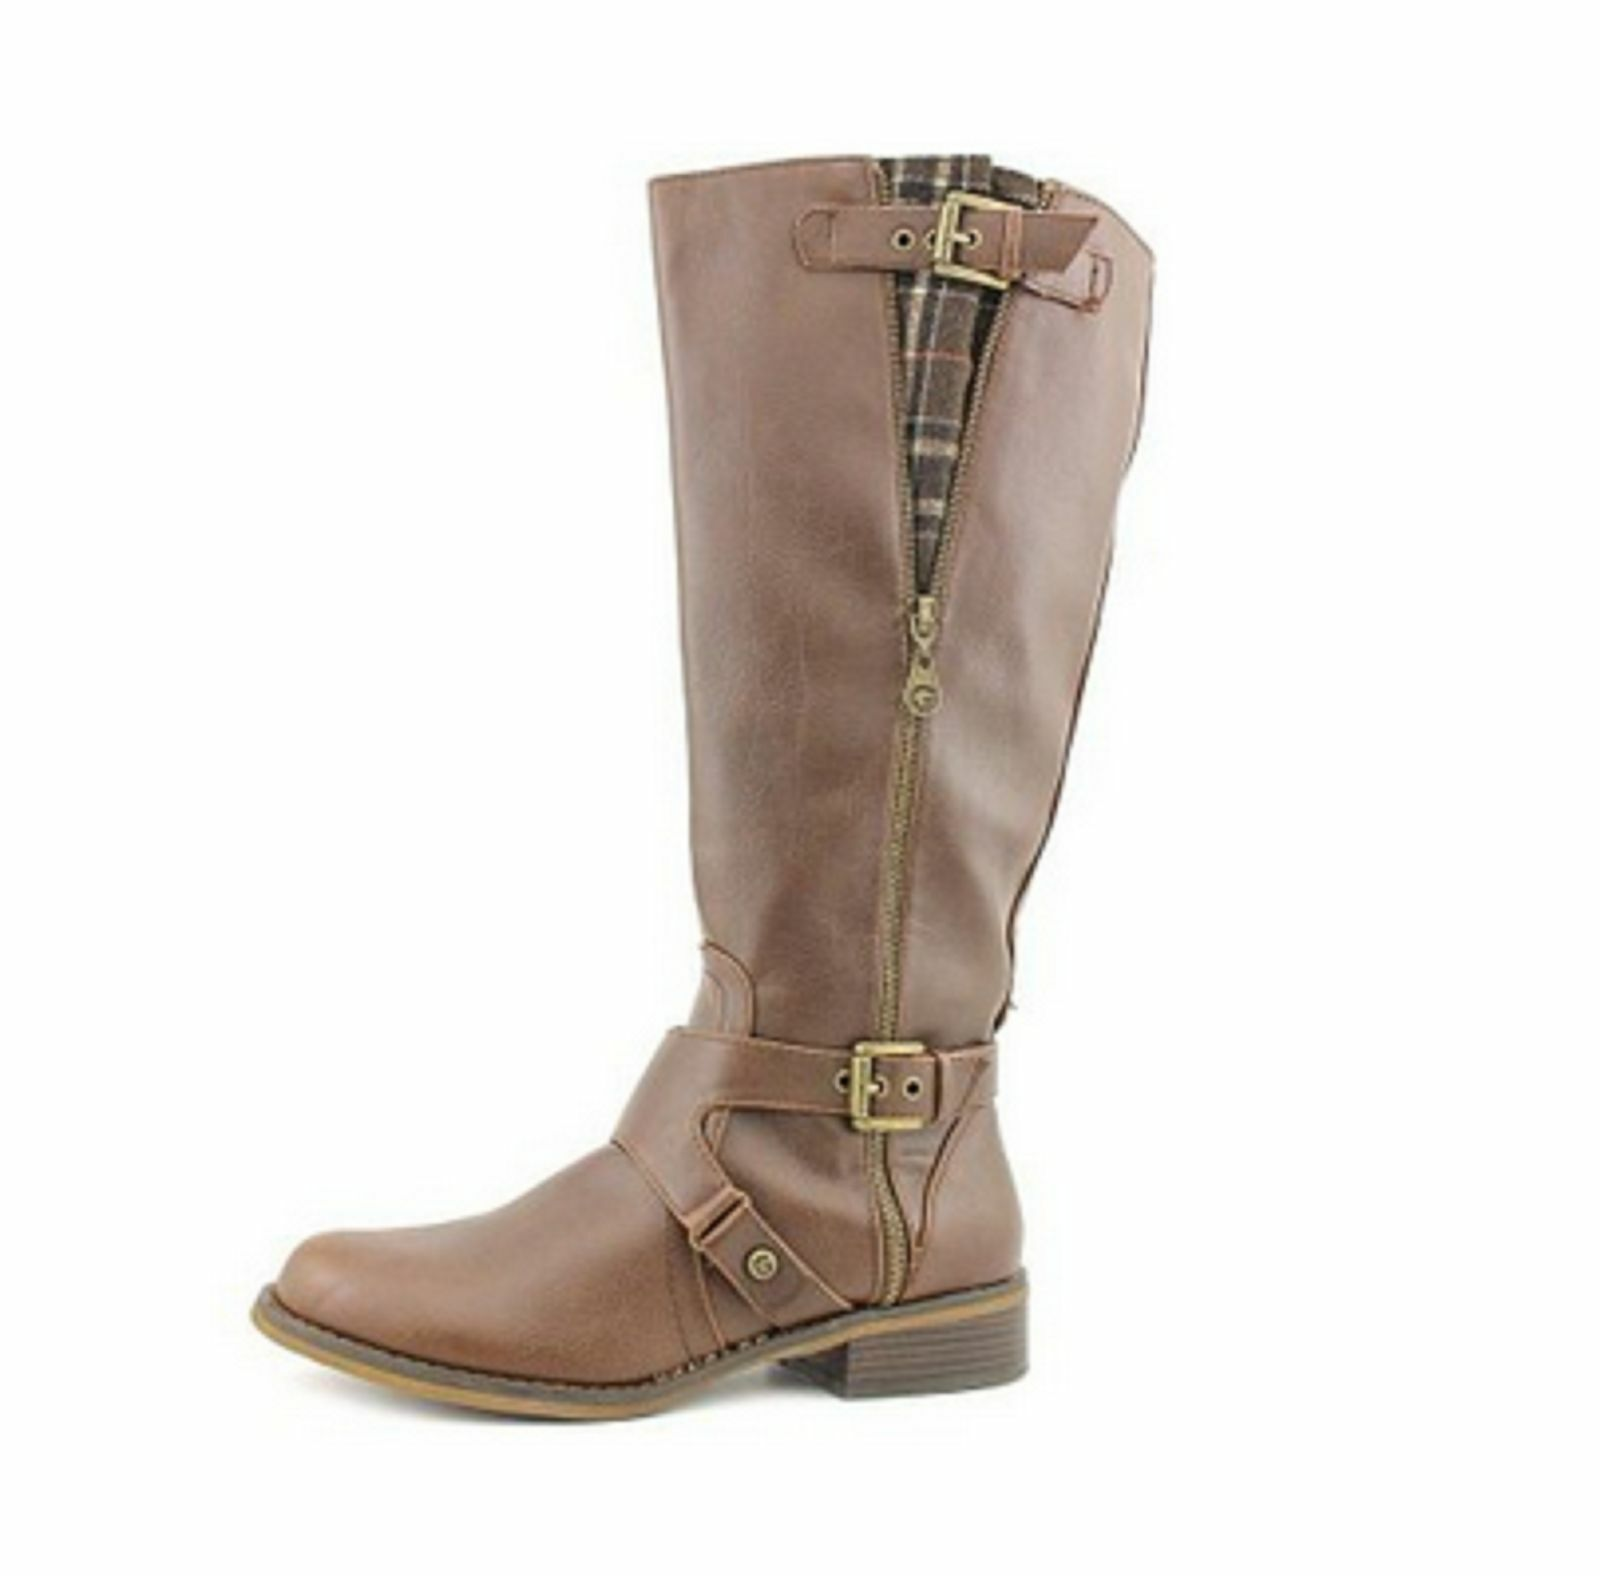 G By Guess Hertlez Womens Brown Faux Leather Fashion Knee-High Boots Size 5MW US